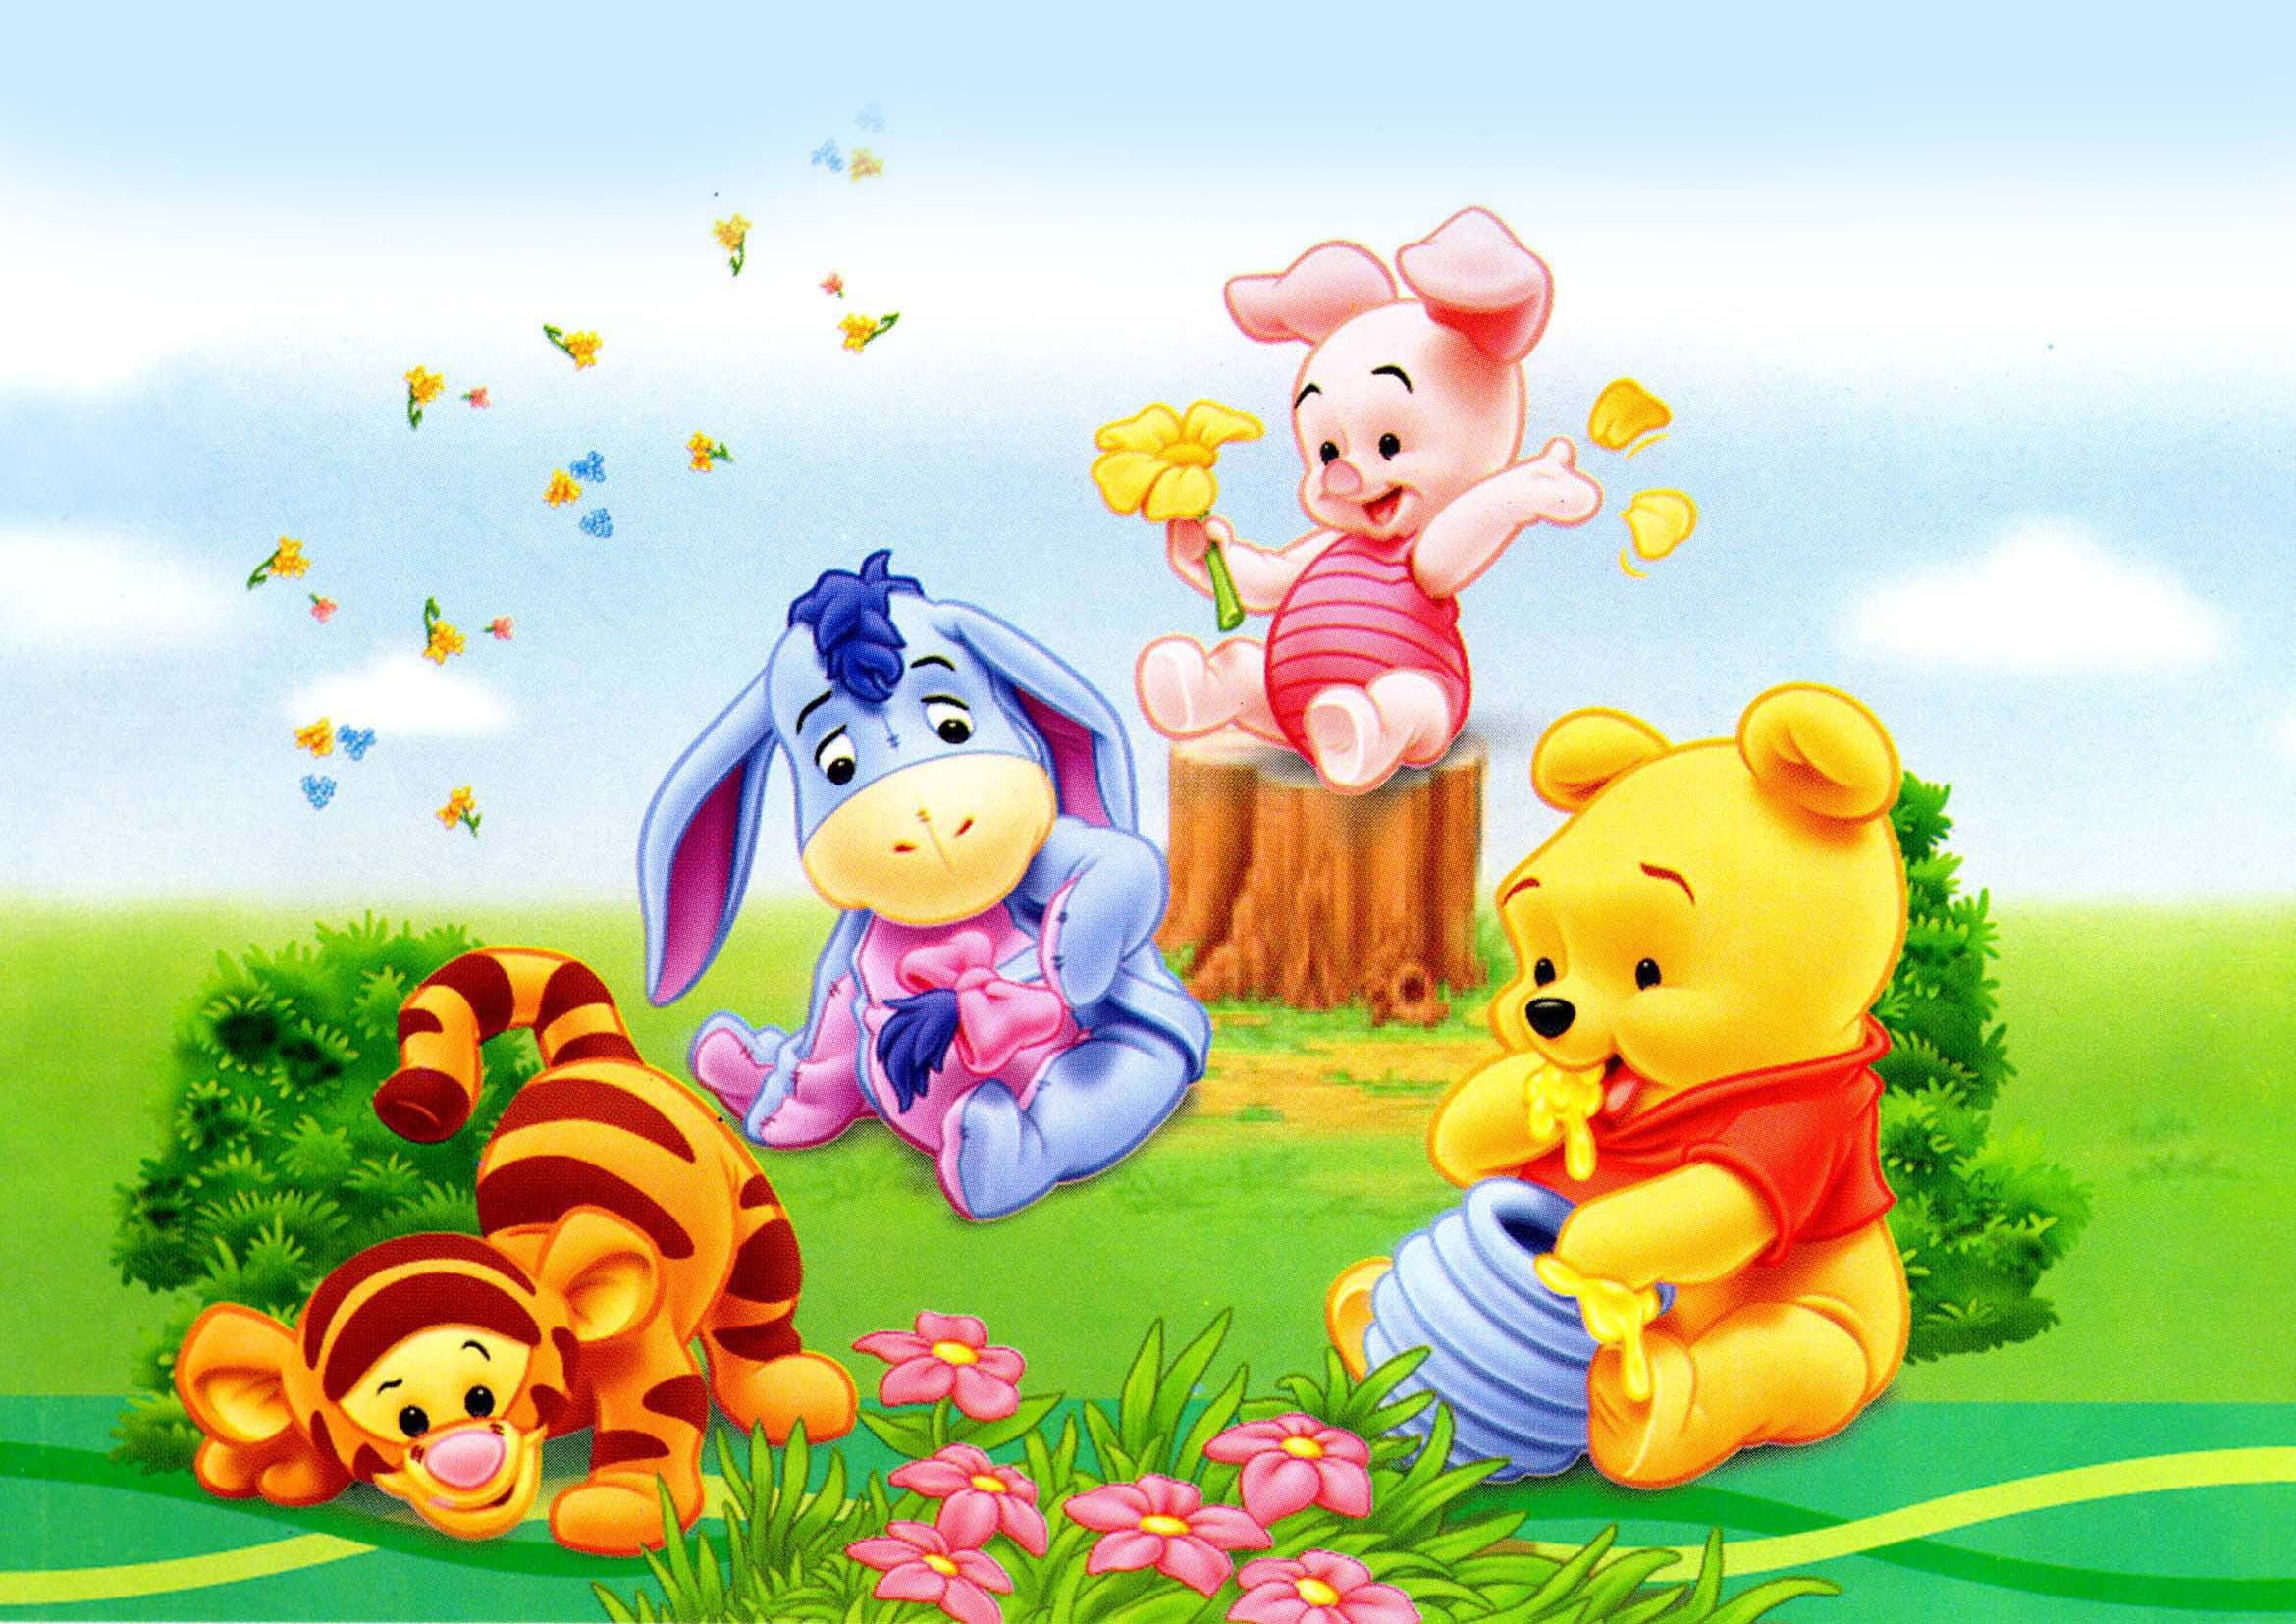 Winnie the pooh desktop wallpaper hd wallpaper and background photos download winnie the thecheapjerseys Image collections